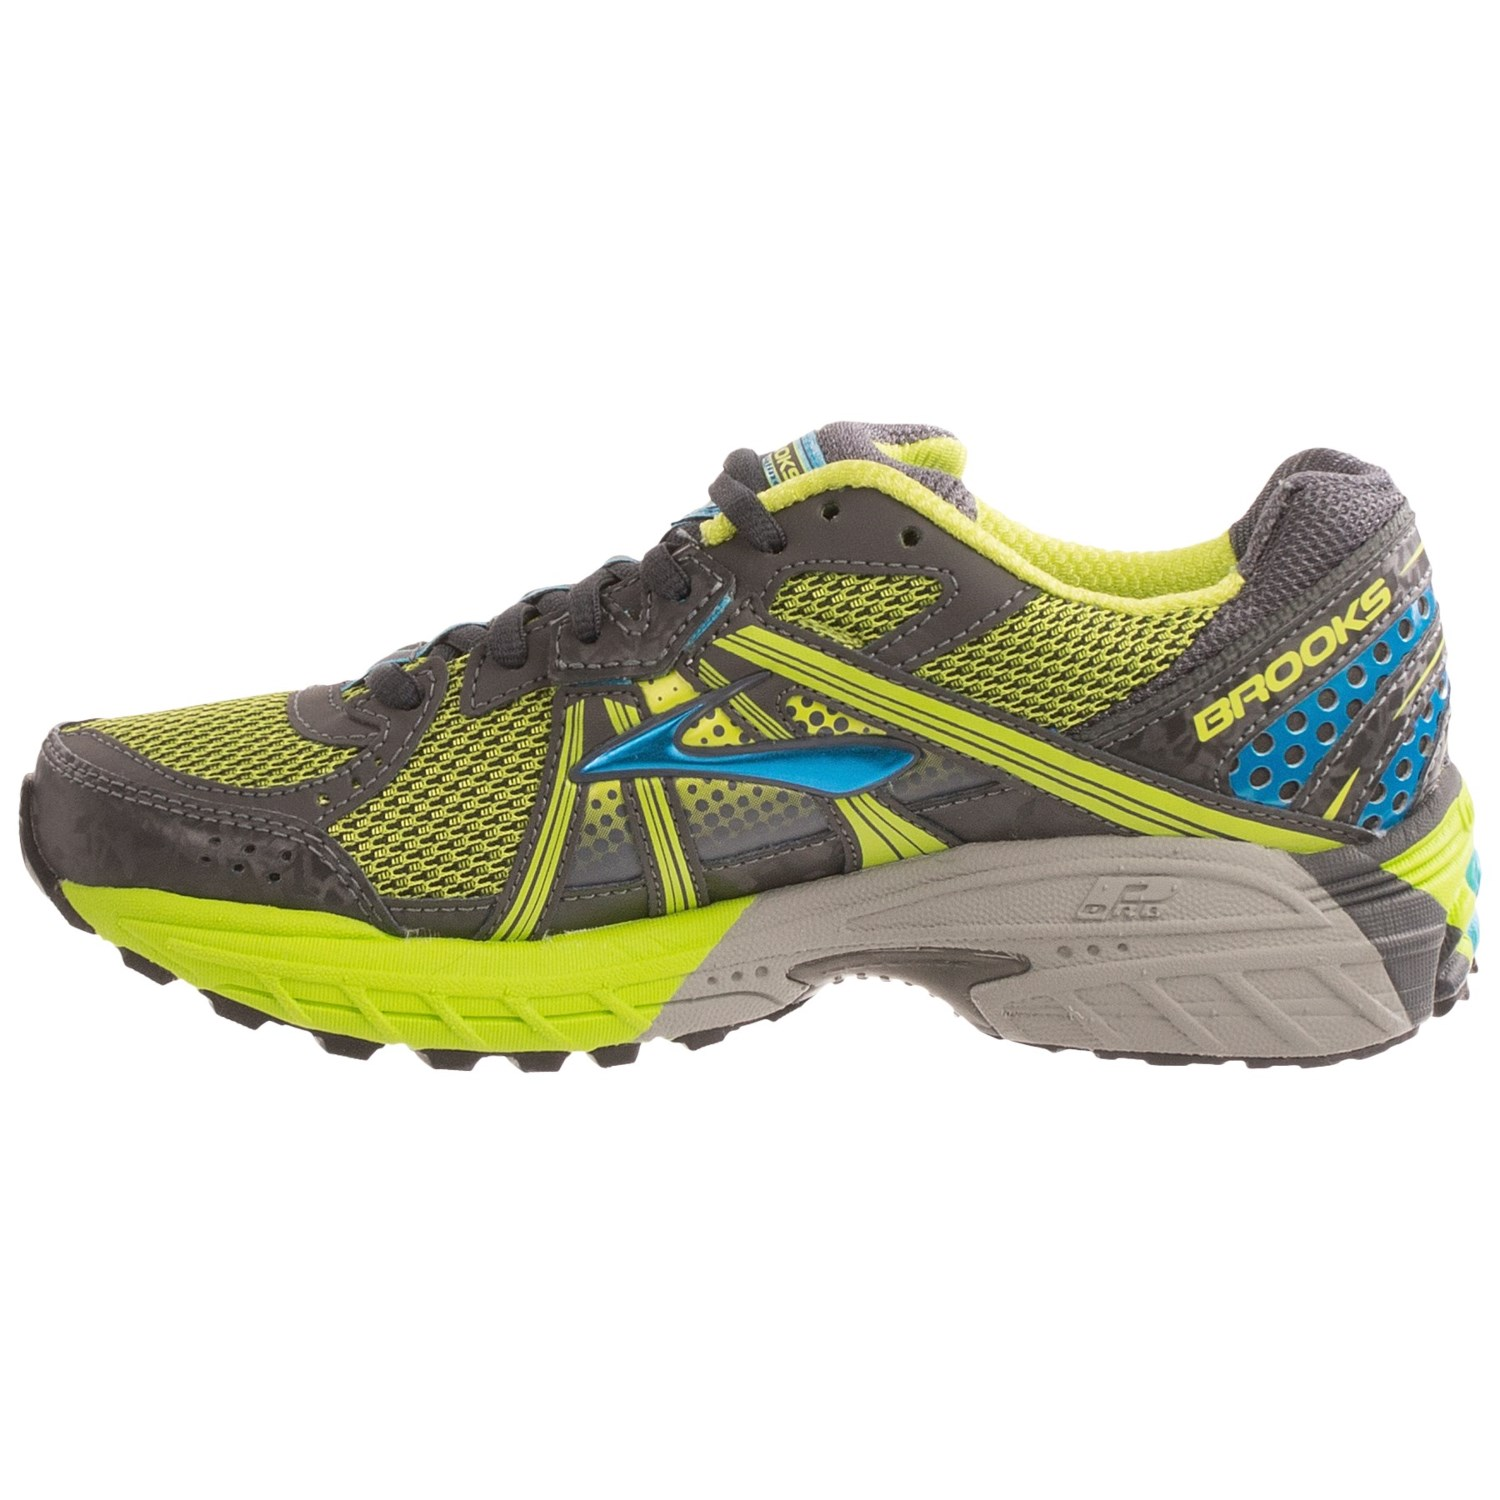 Clearance On Brooks Running Shoes